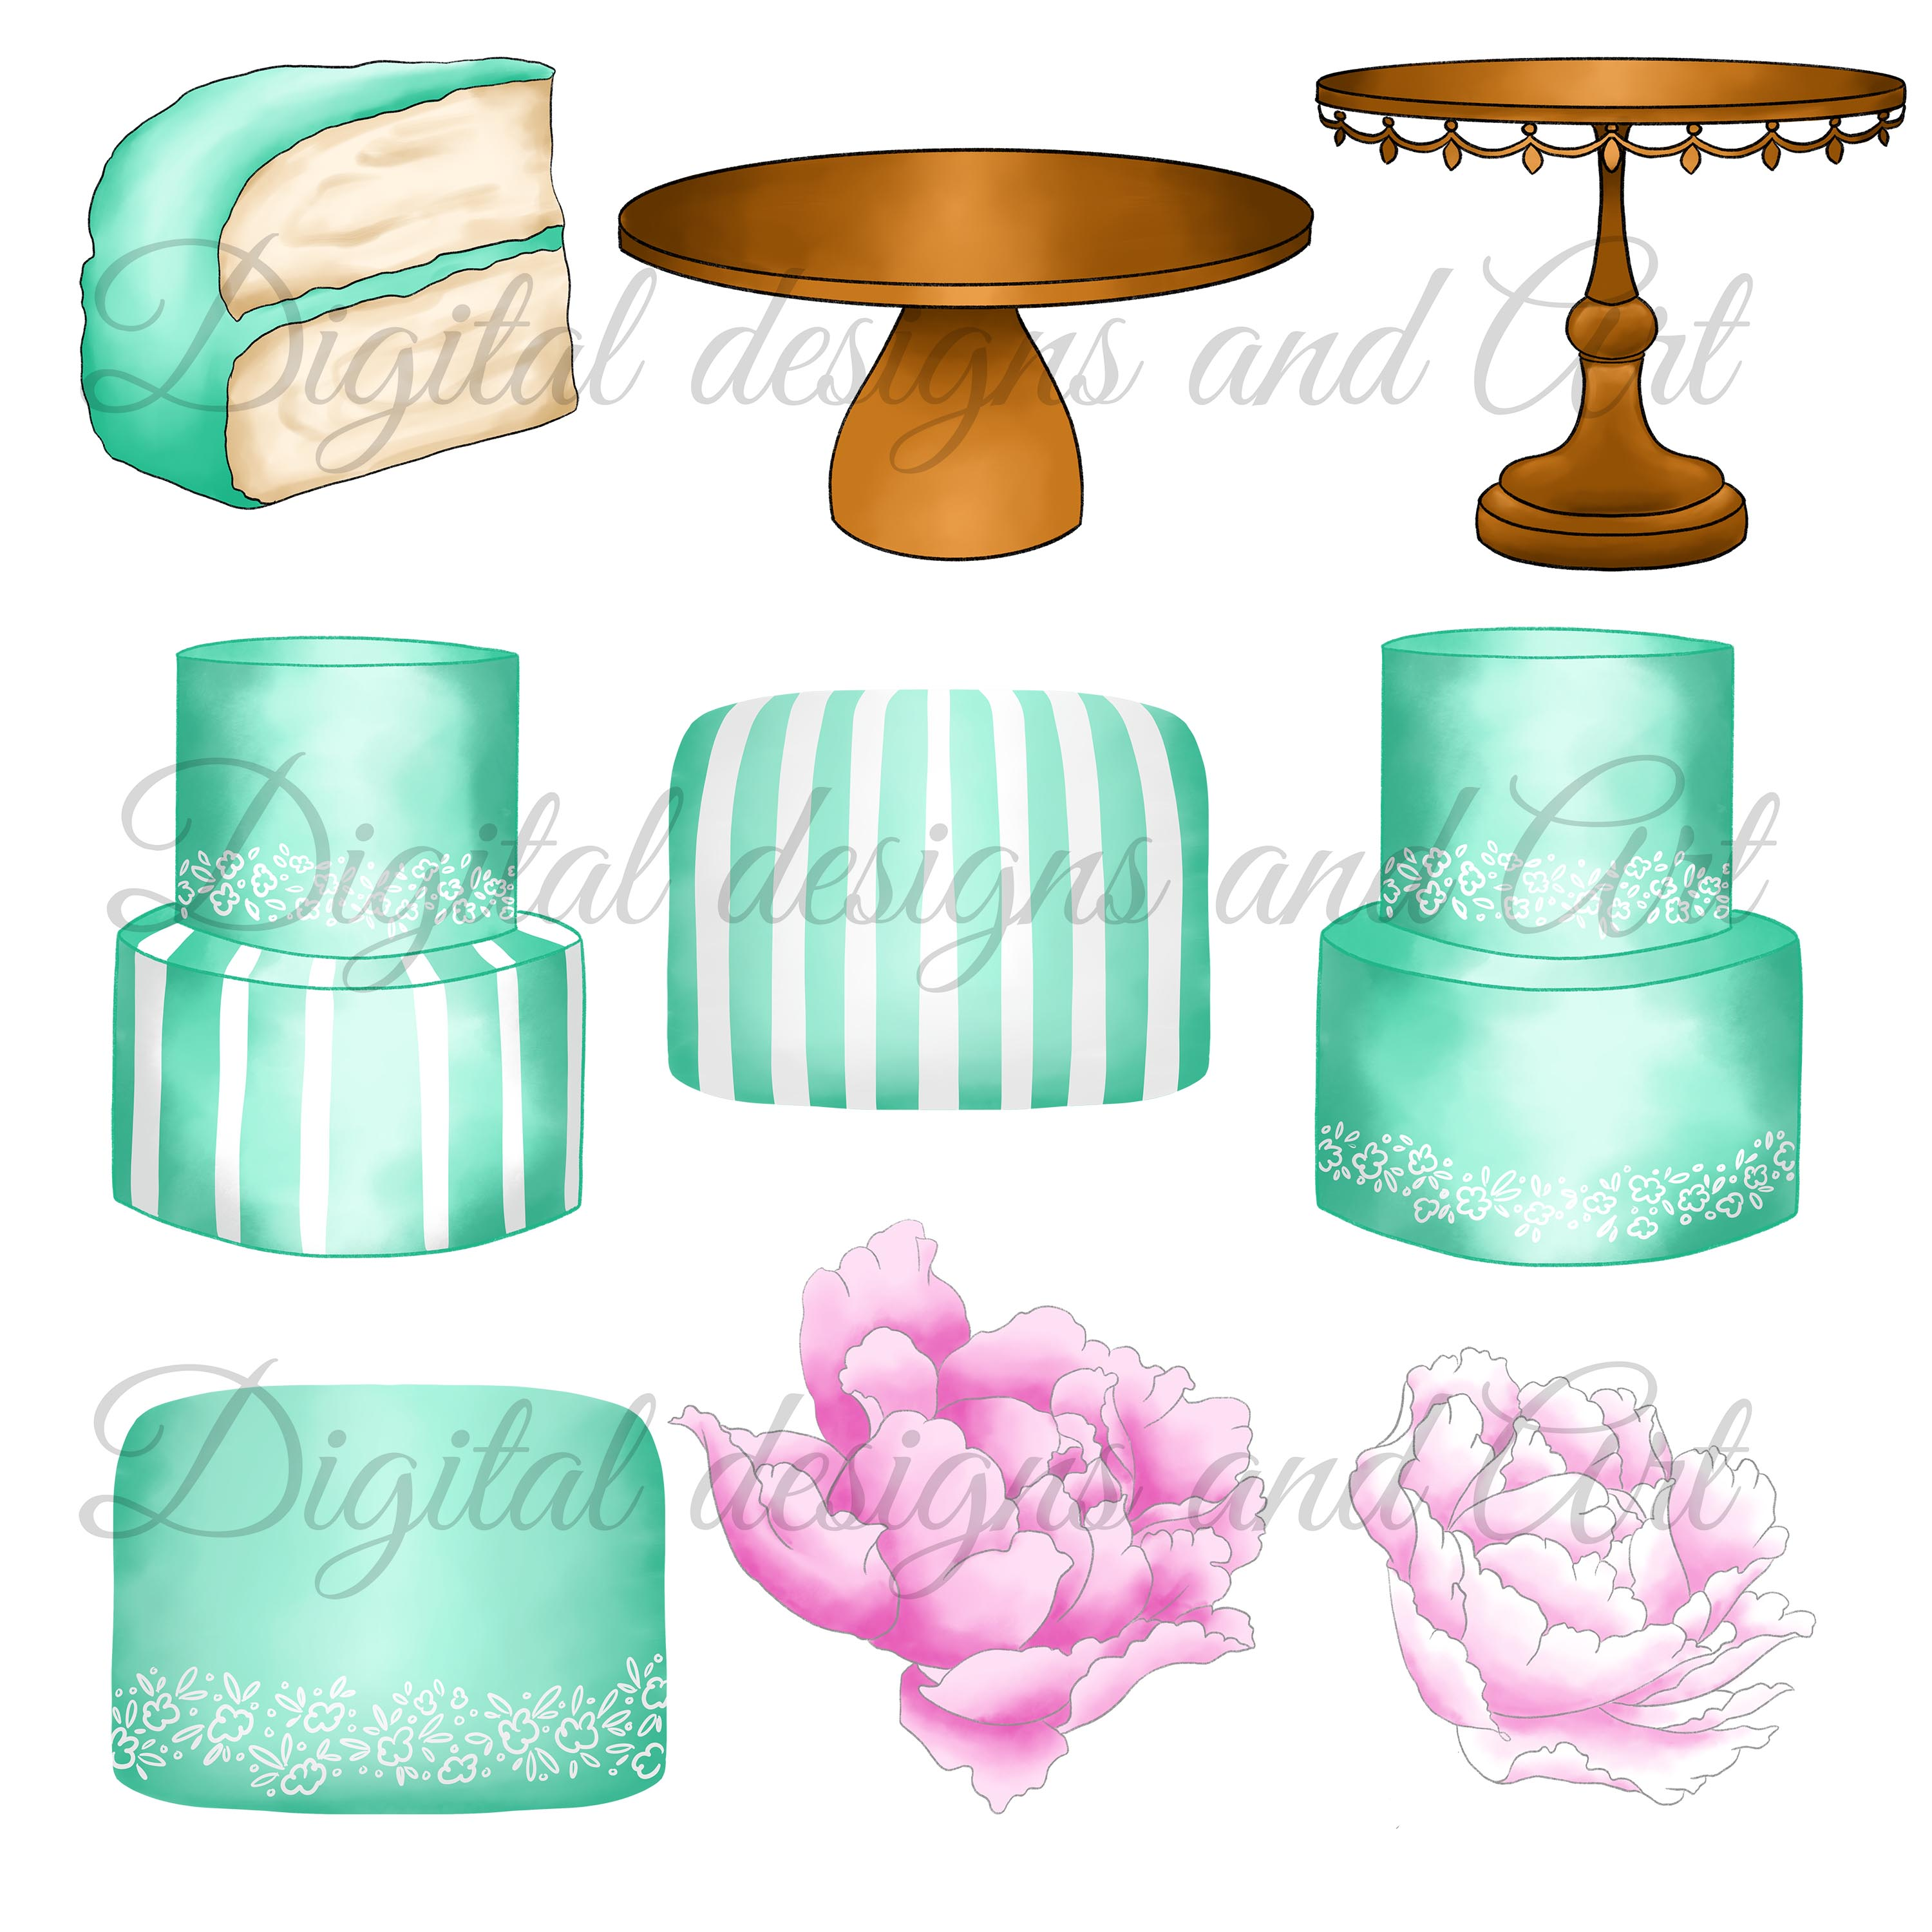 Fashion cakes clipart example image 4